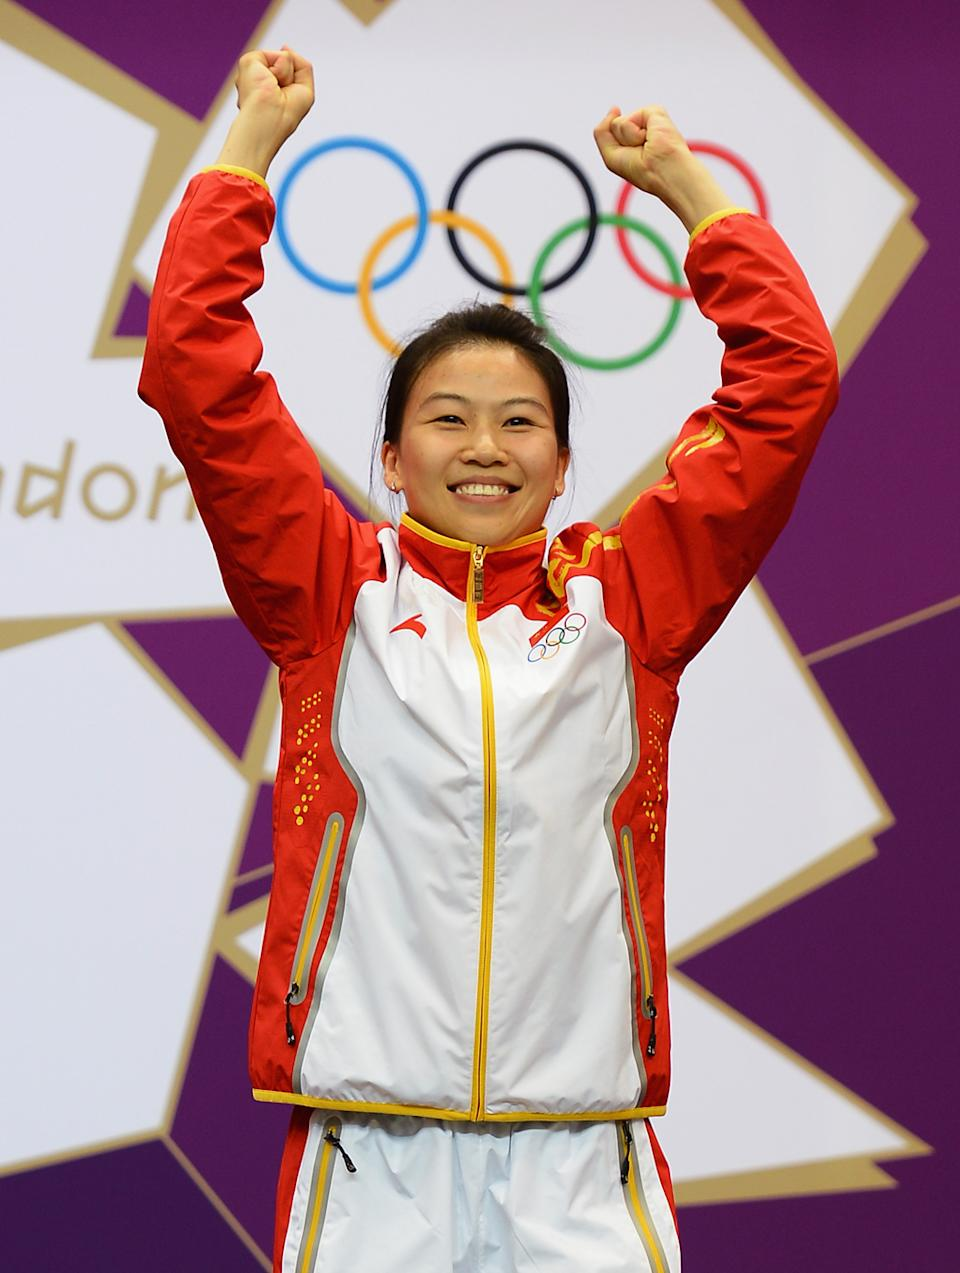 Siling Yi of China celebrates winning the first gold medal of the London Games. She won the Women's 10m Air Rifle Shooting Final on Day 1 of the London 2012 Olympic Games at The Royal Artillery Barracks on July 28, 2012 in London, England. Sylwia Bogacka of Poland won silver and Dan Yu of China won bronze. (Photo by Lars Baron/Getty Images)